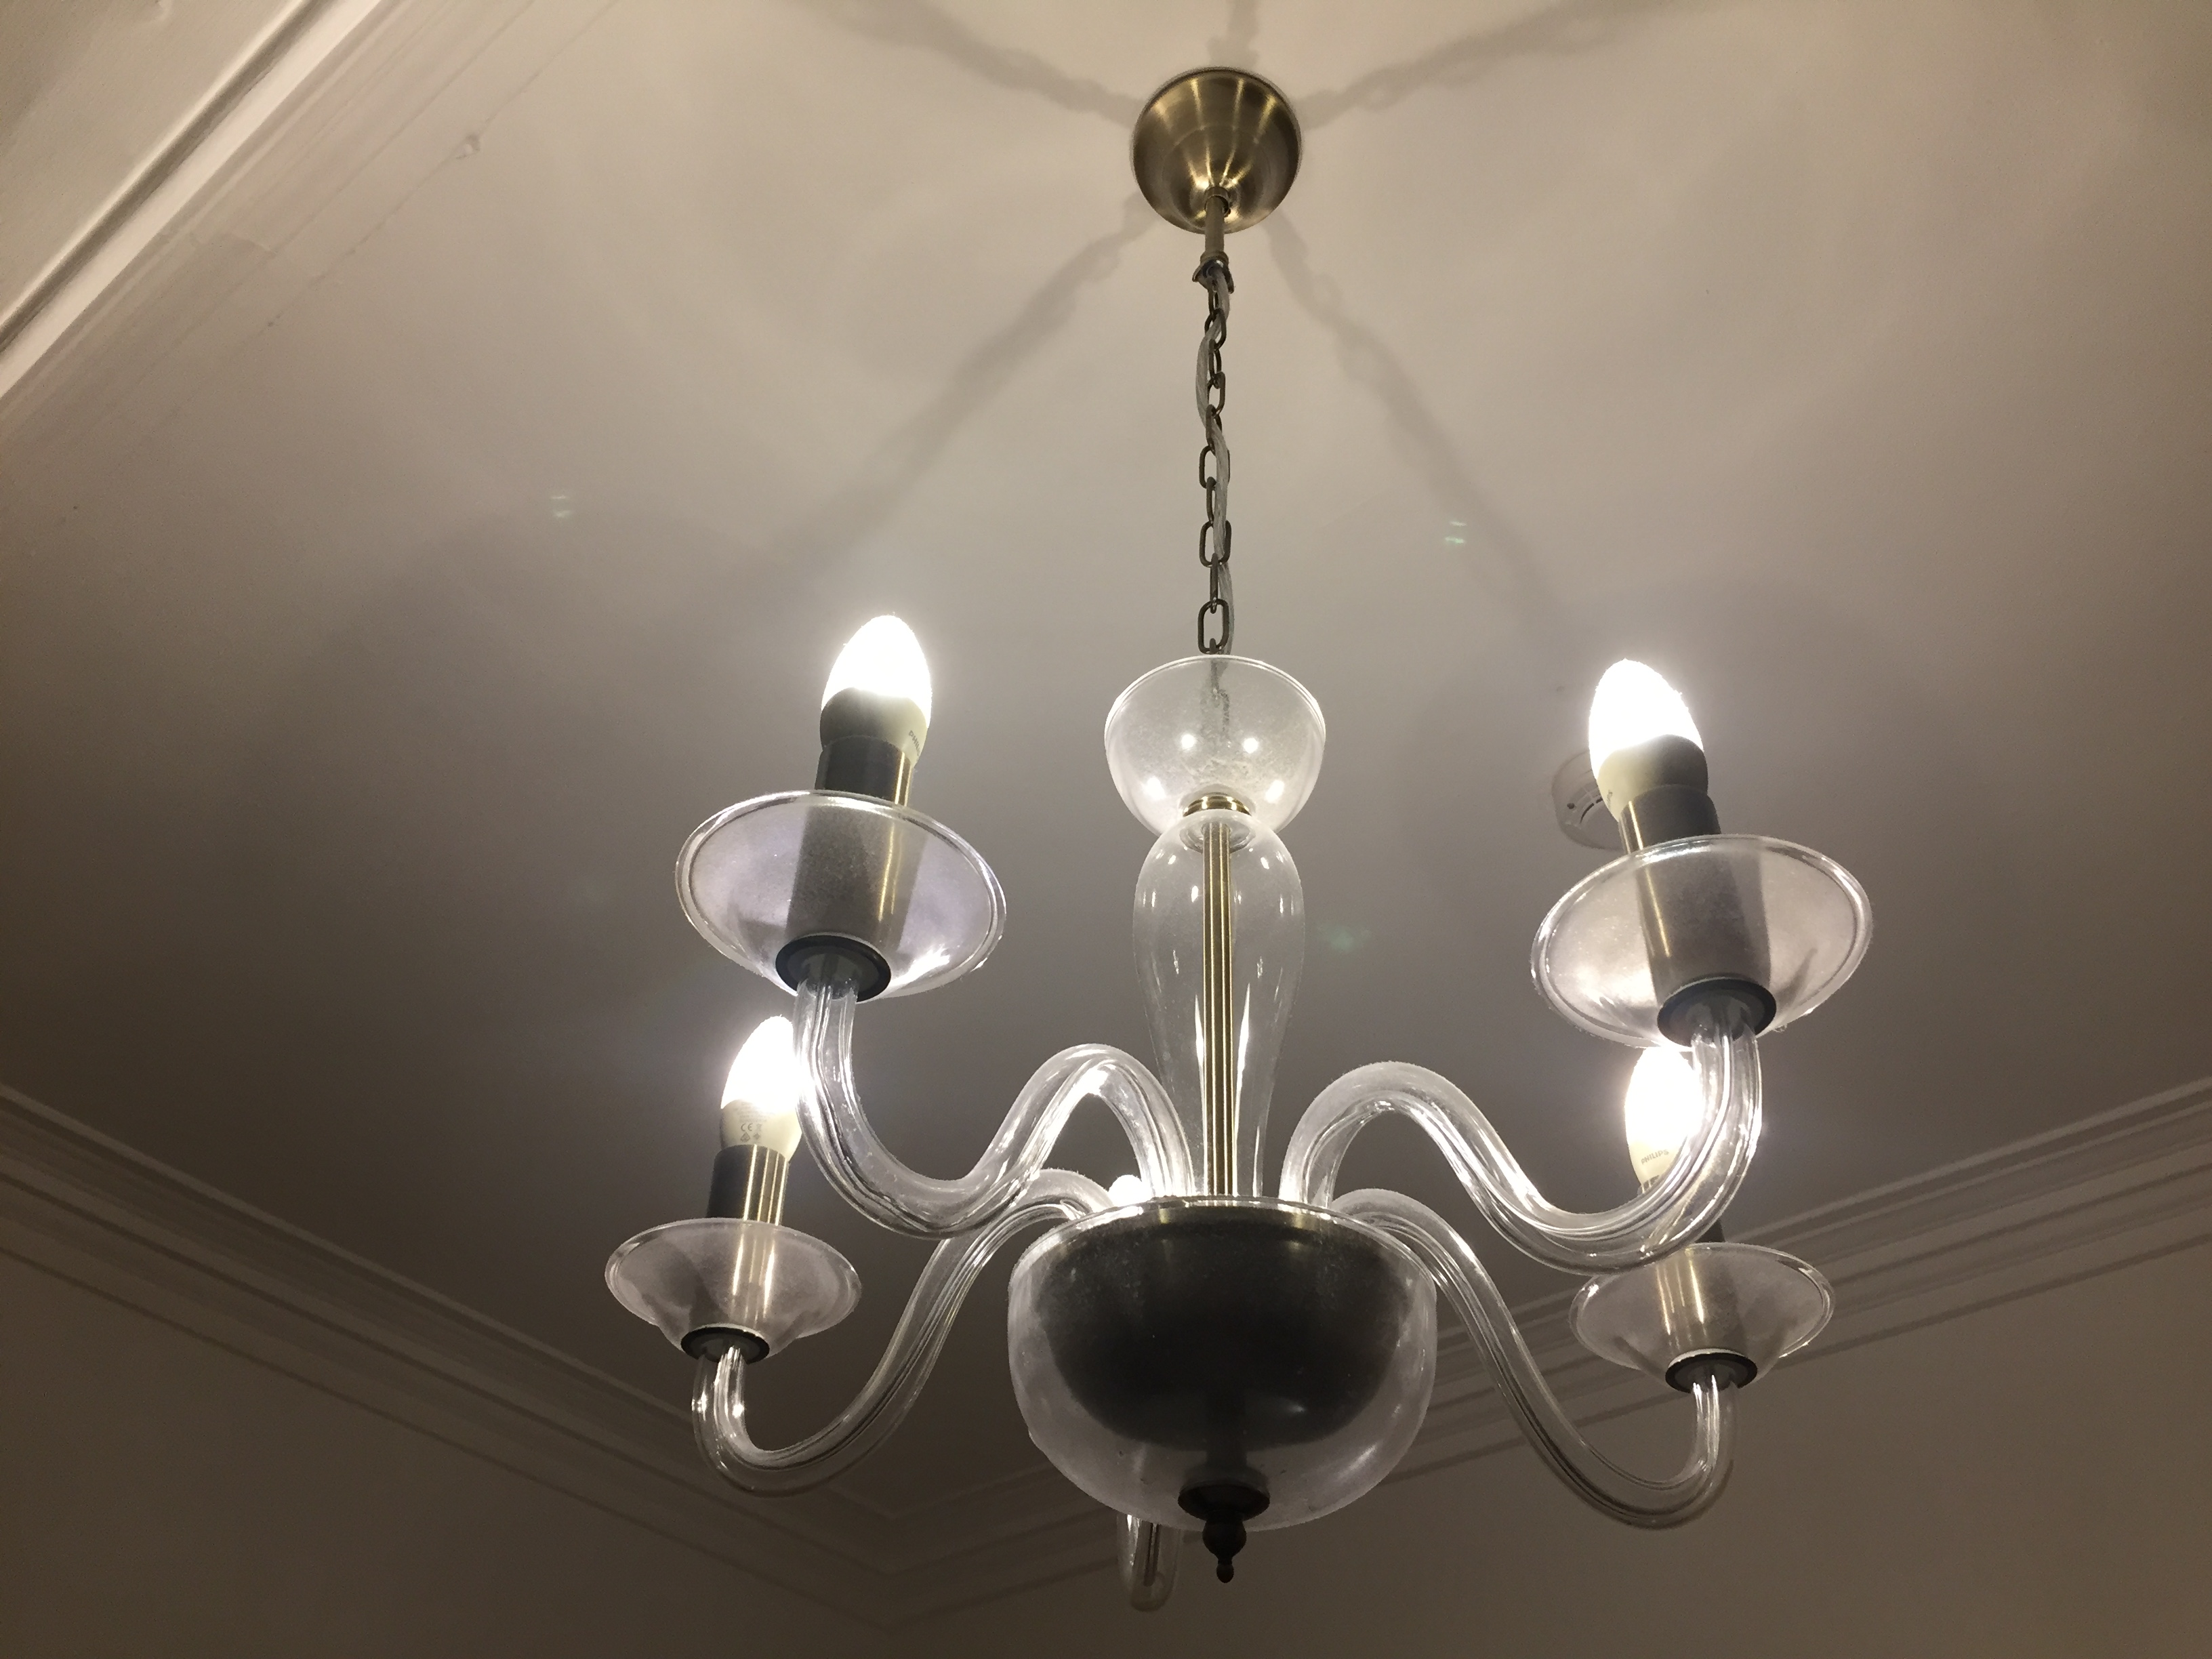 Small chandelier on the hotel room ceiling, with 4 lights held up on snaking glass poles coming out from the centre.